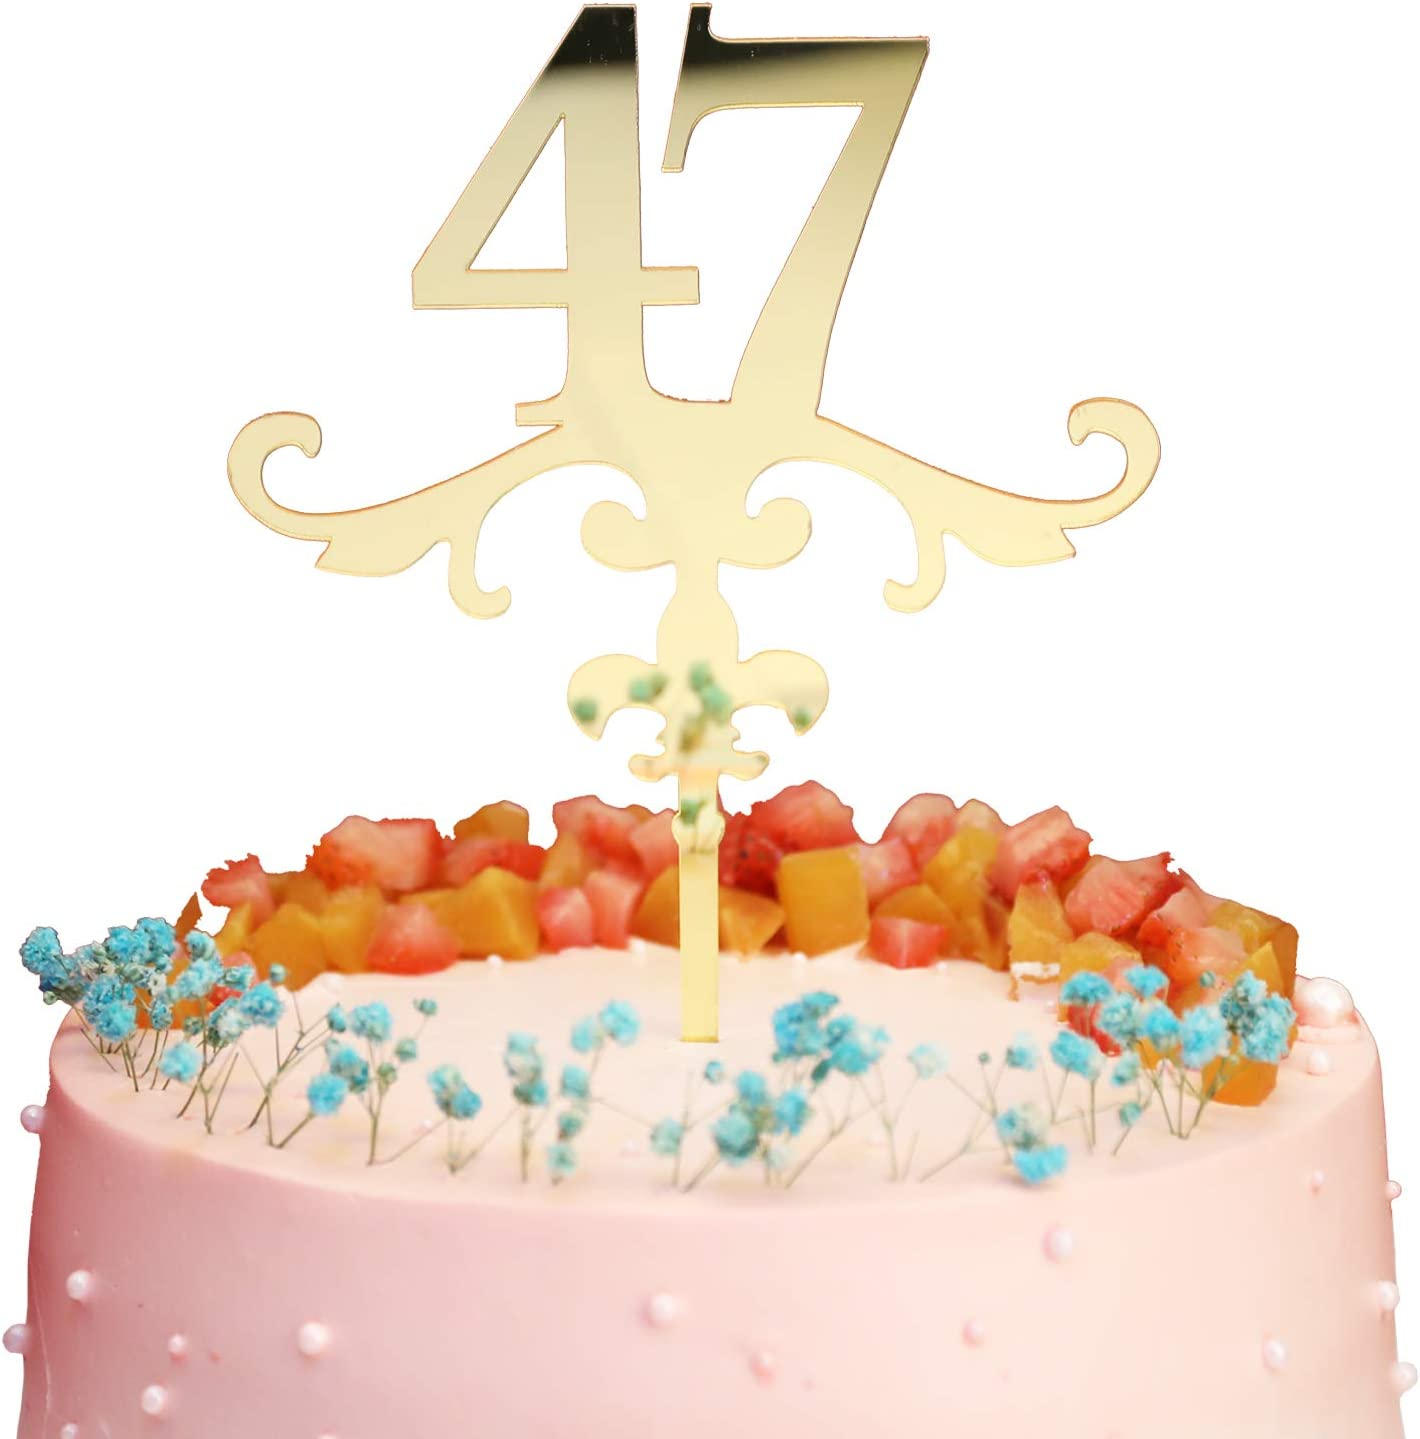 Mirror Gold Number 44 Cake Topper Acrylic Cake Topper Ideal for 44th Birthday or Anniversary Celebration